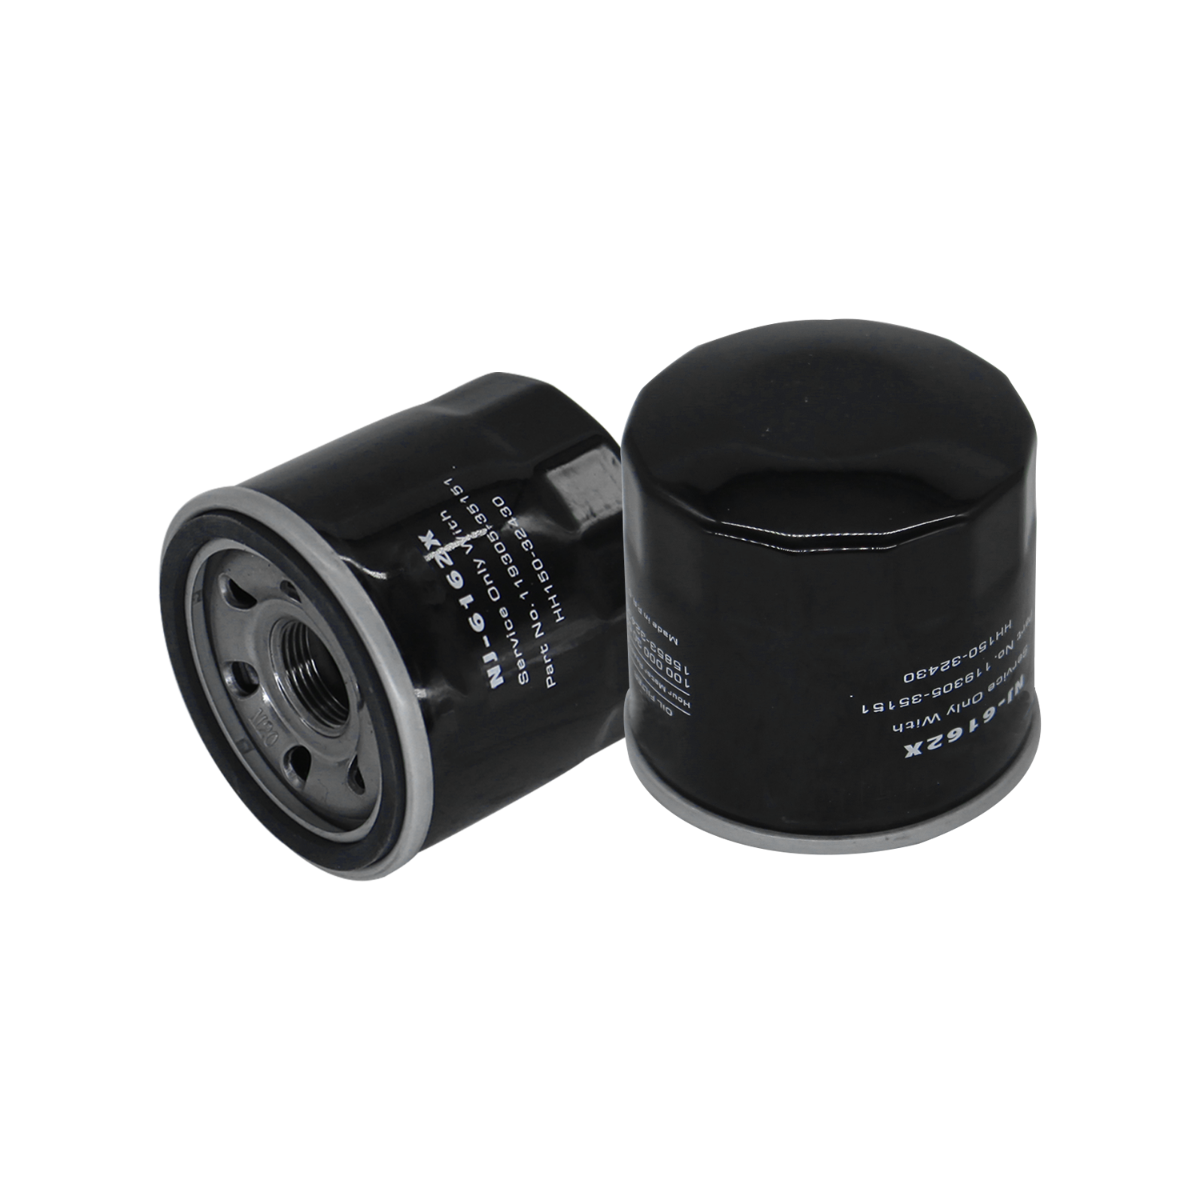 Oil Filter 119305-35151 2Pcs Compatible with Hitachi Zaxis 8 ZX17U-2 ZX8-2